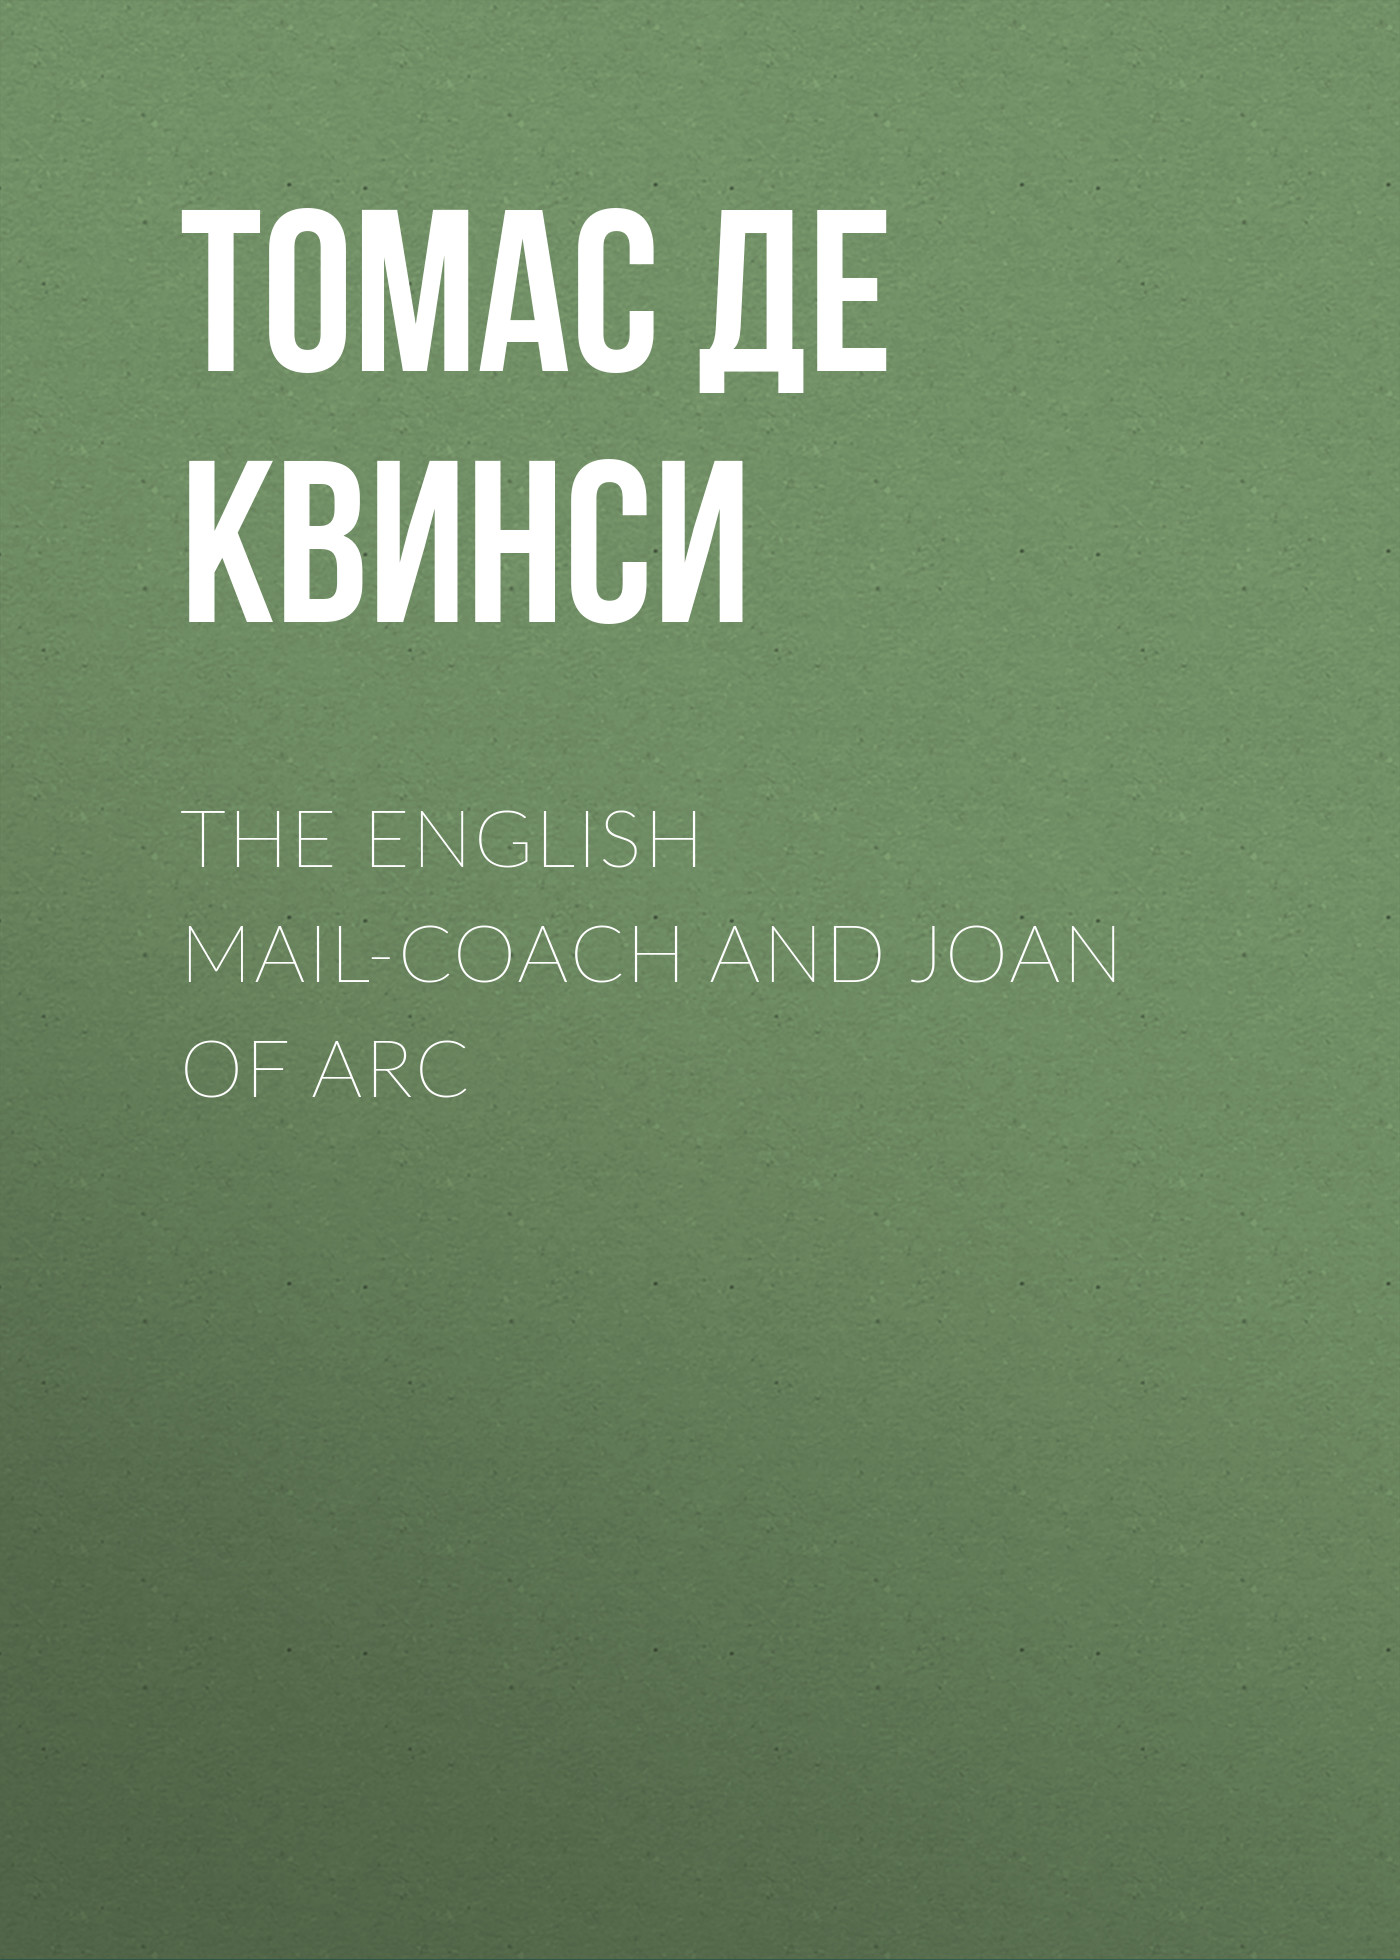 Томас де Квинси The English Mail-Coach and Joan of Arc марк твен personal recollections of joan of arc volume 1